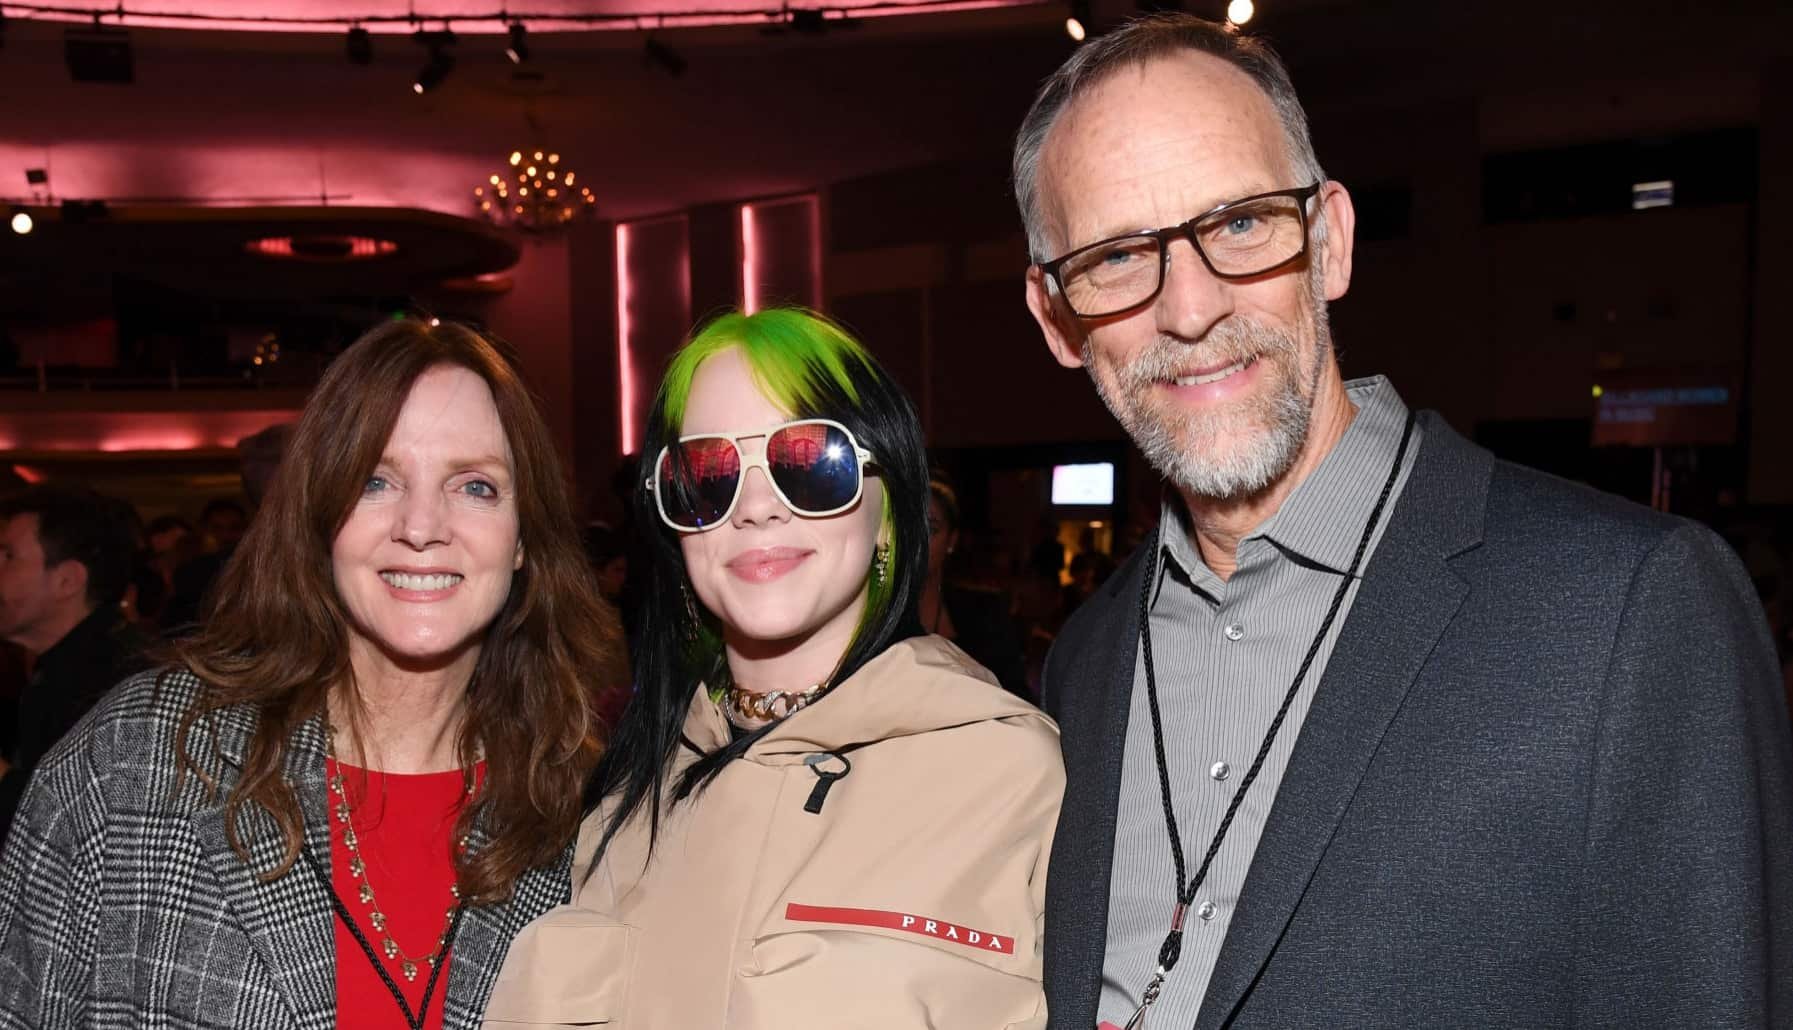 Maggie Baird, Billie Eilish, and Patrick O'Connell